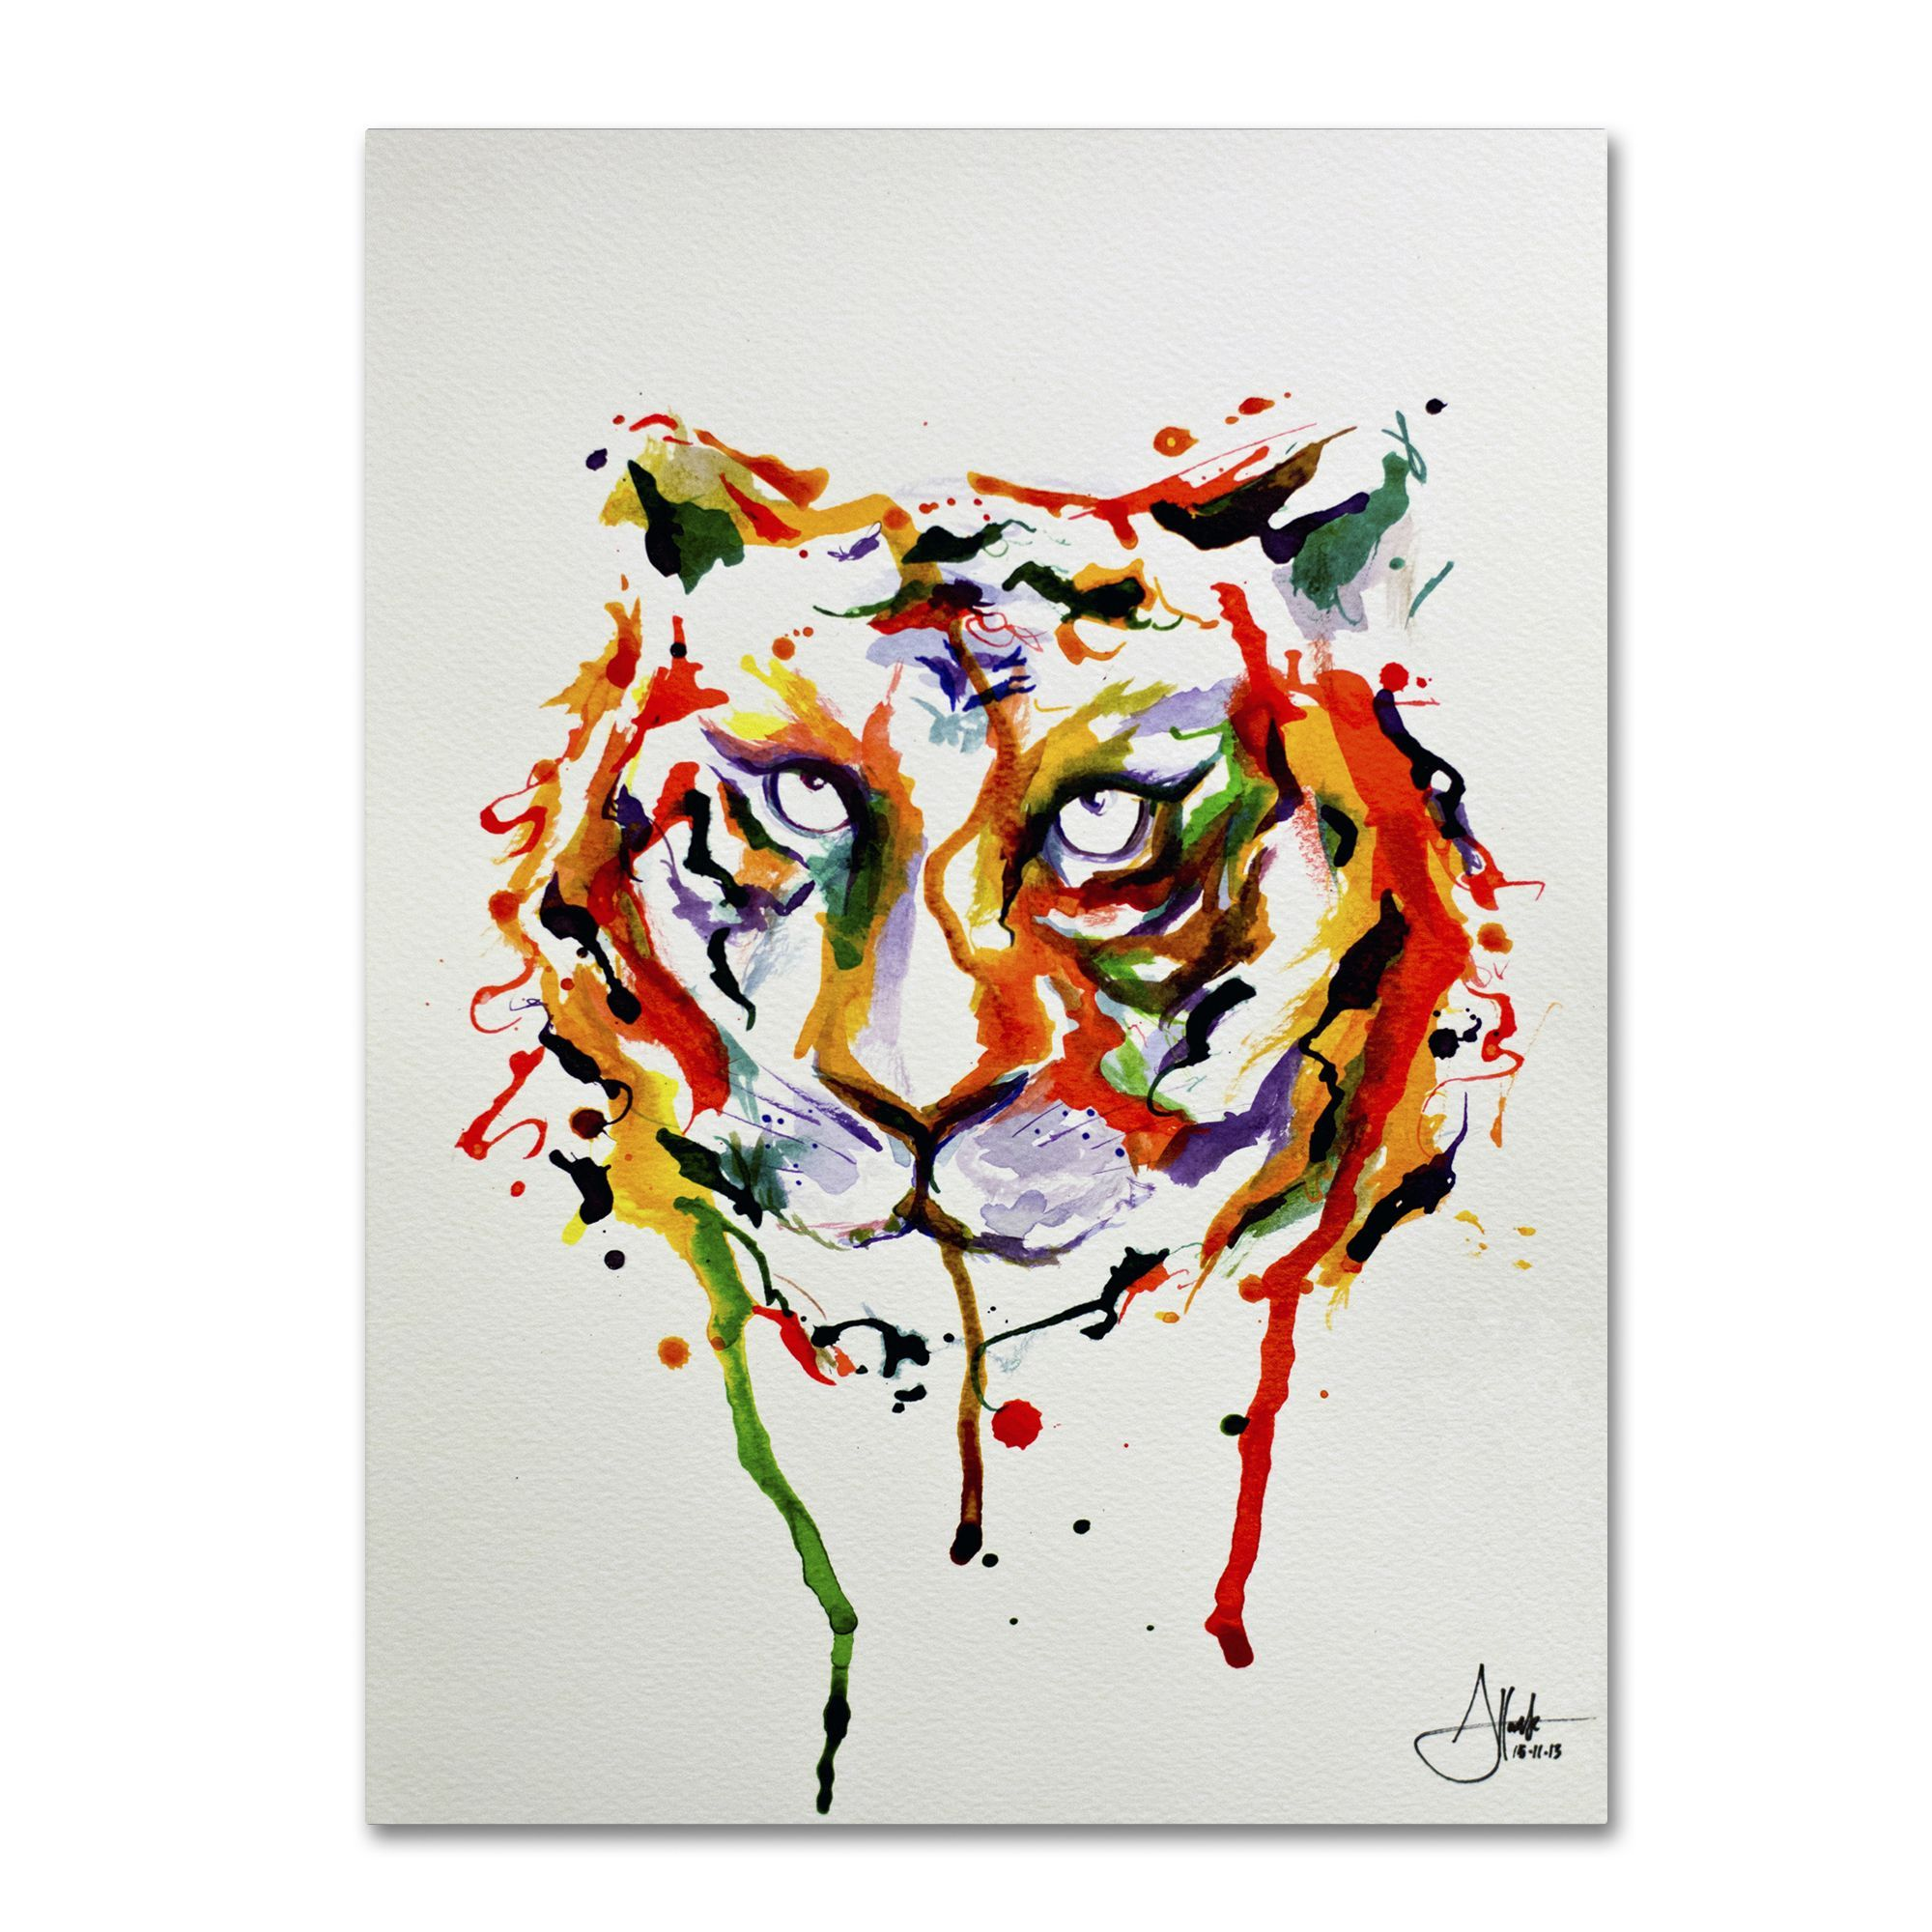 Marc allante udemeteru canvas art products pinterest canvases